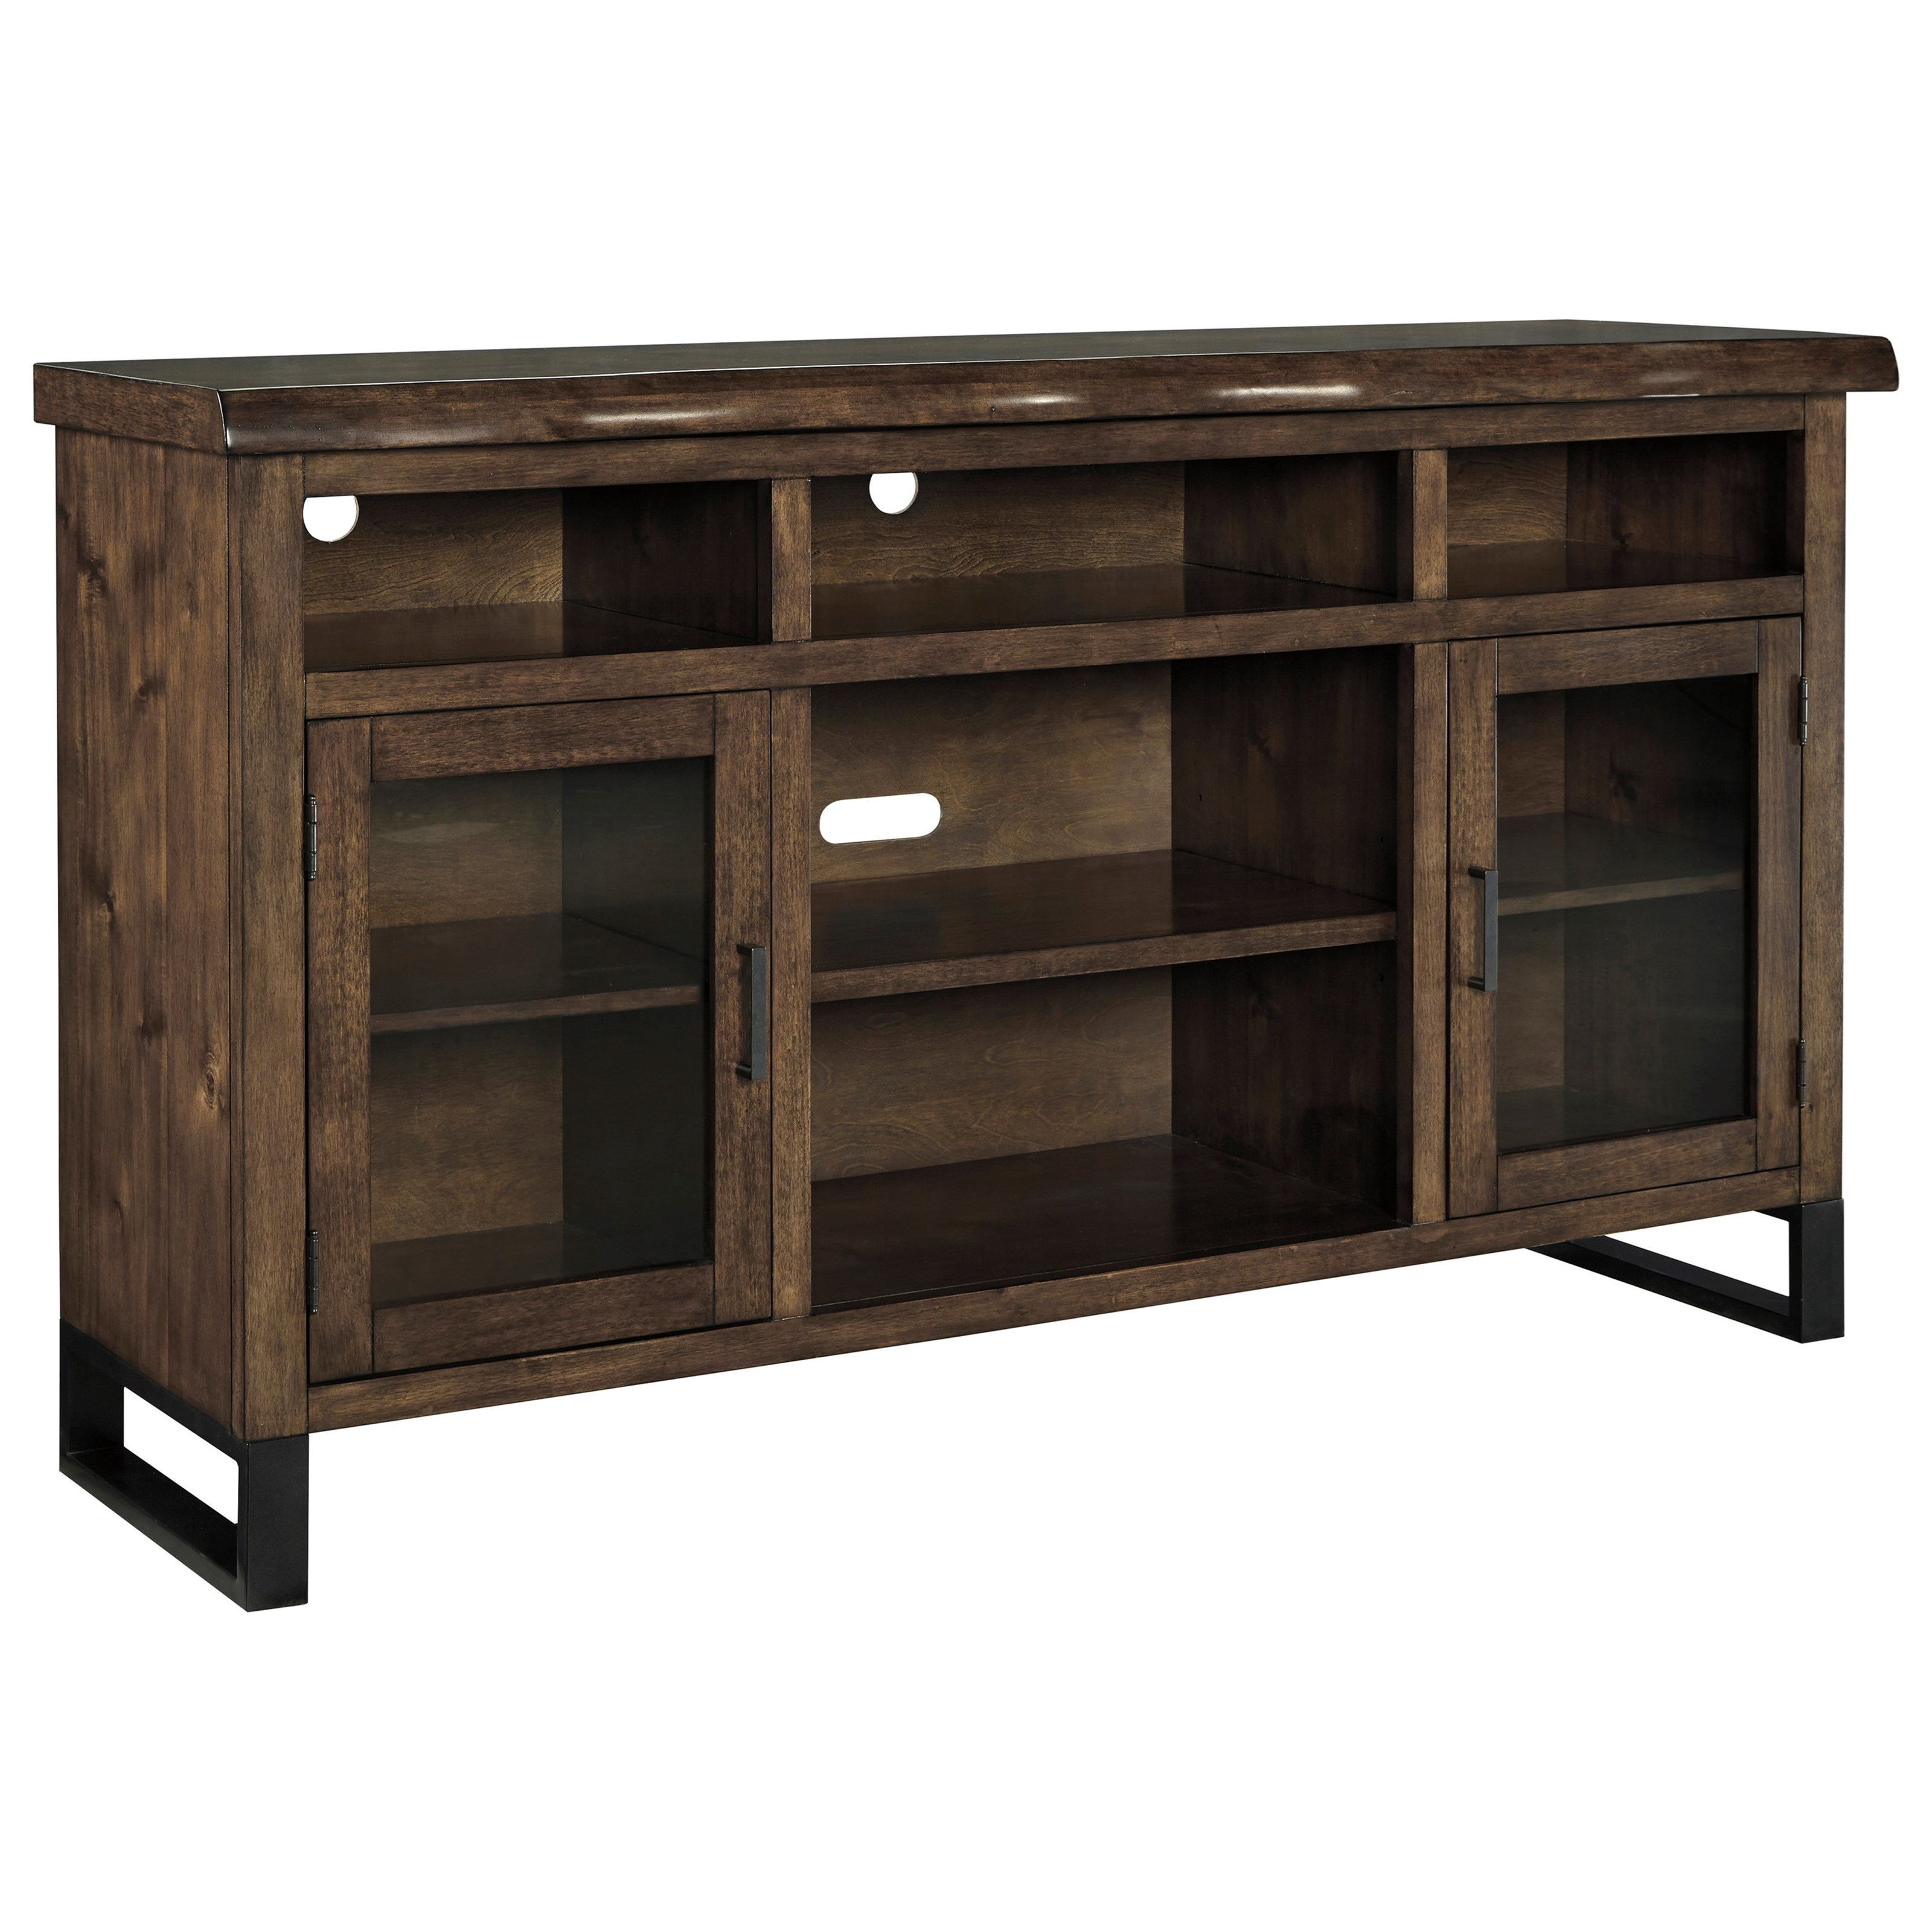 Signature Design by Ashley Esmarina Large TV Stand - Item Number: W815-48